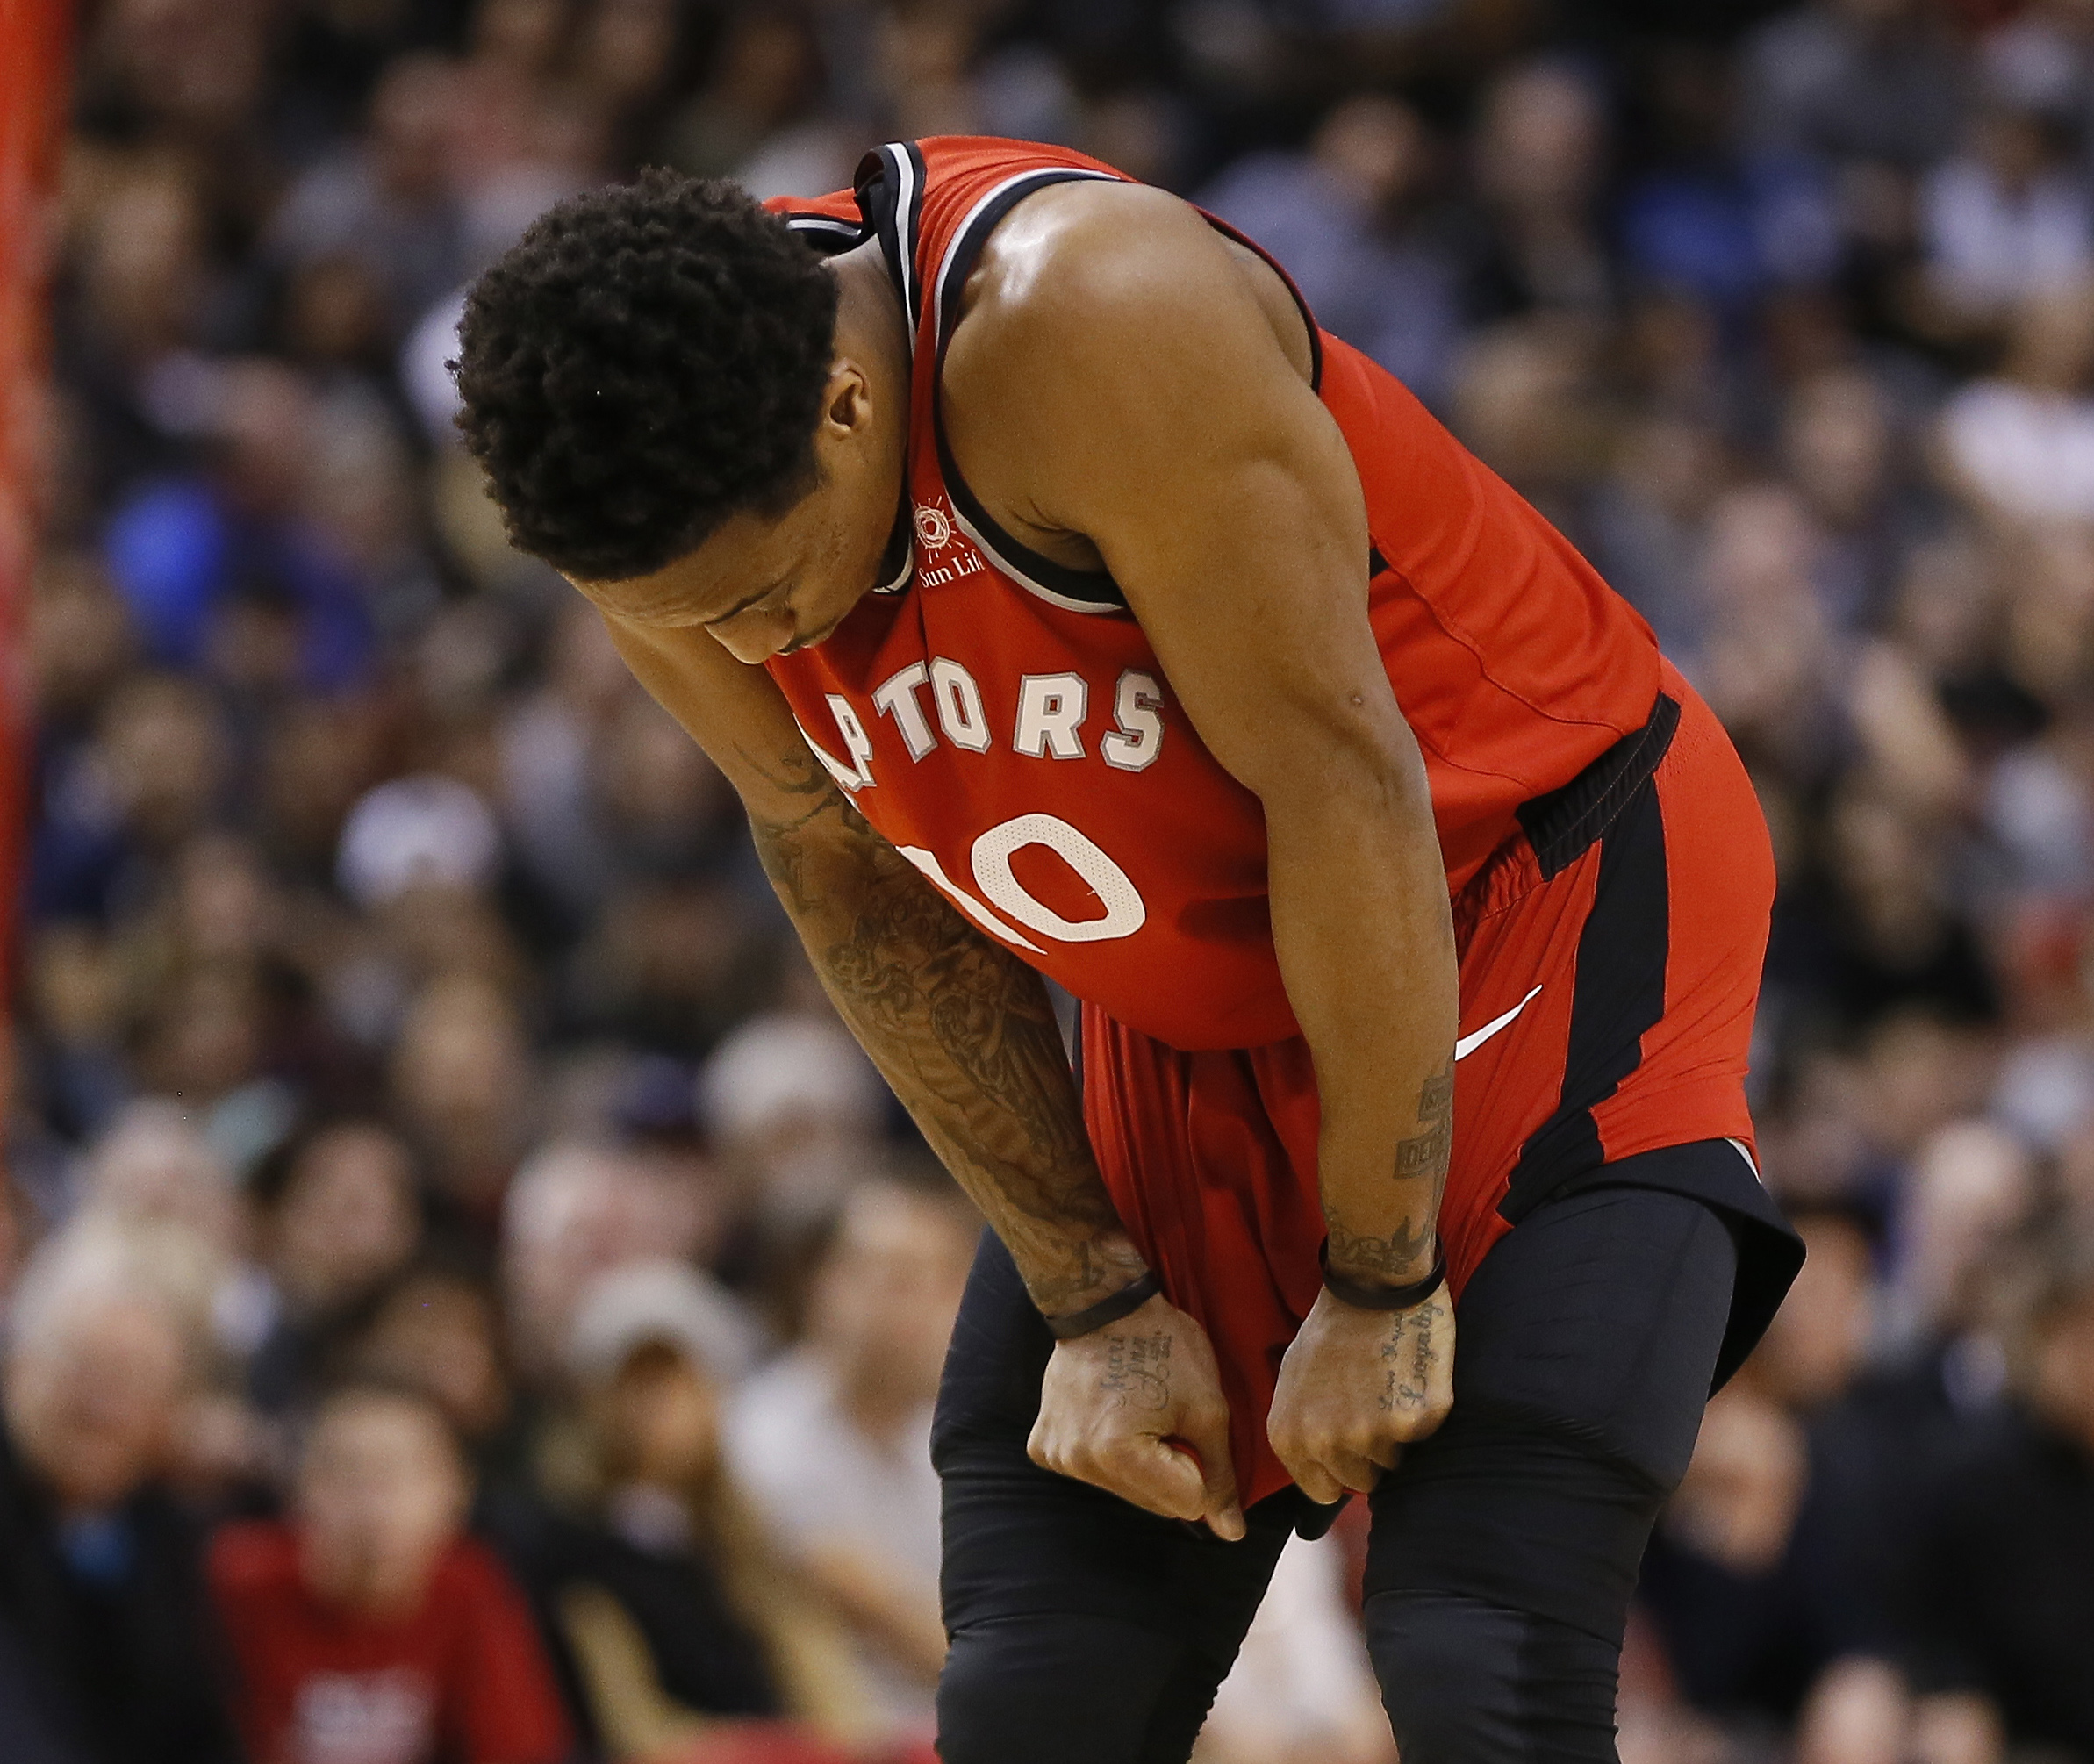 2018-03-18t201959z_1867010136_nocid_rtrmadp_3_nba-oklahoma-city-thunder-at-toronto-raptors